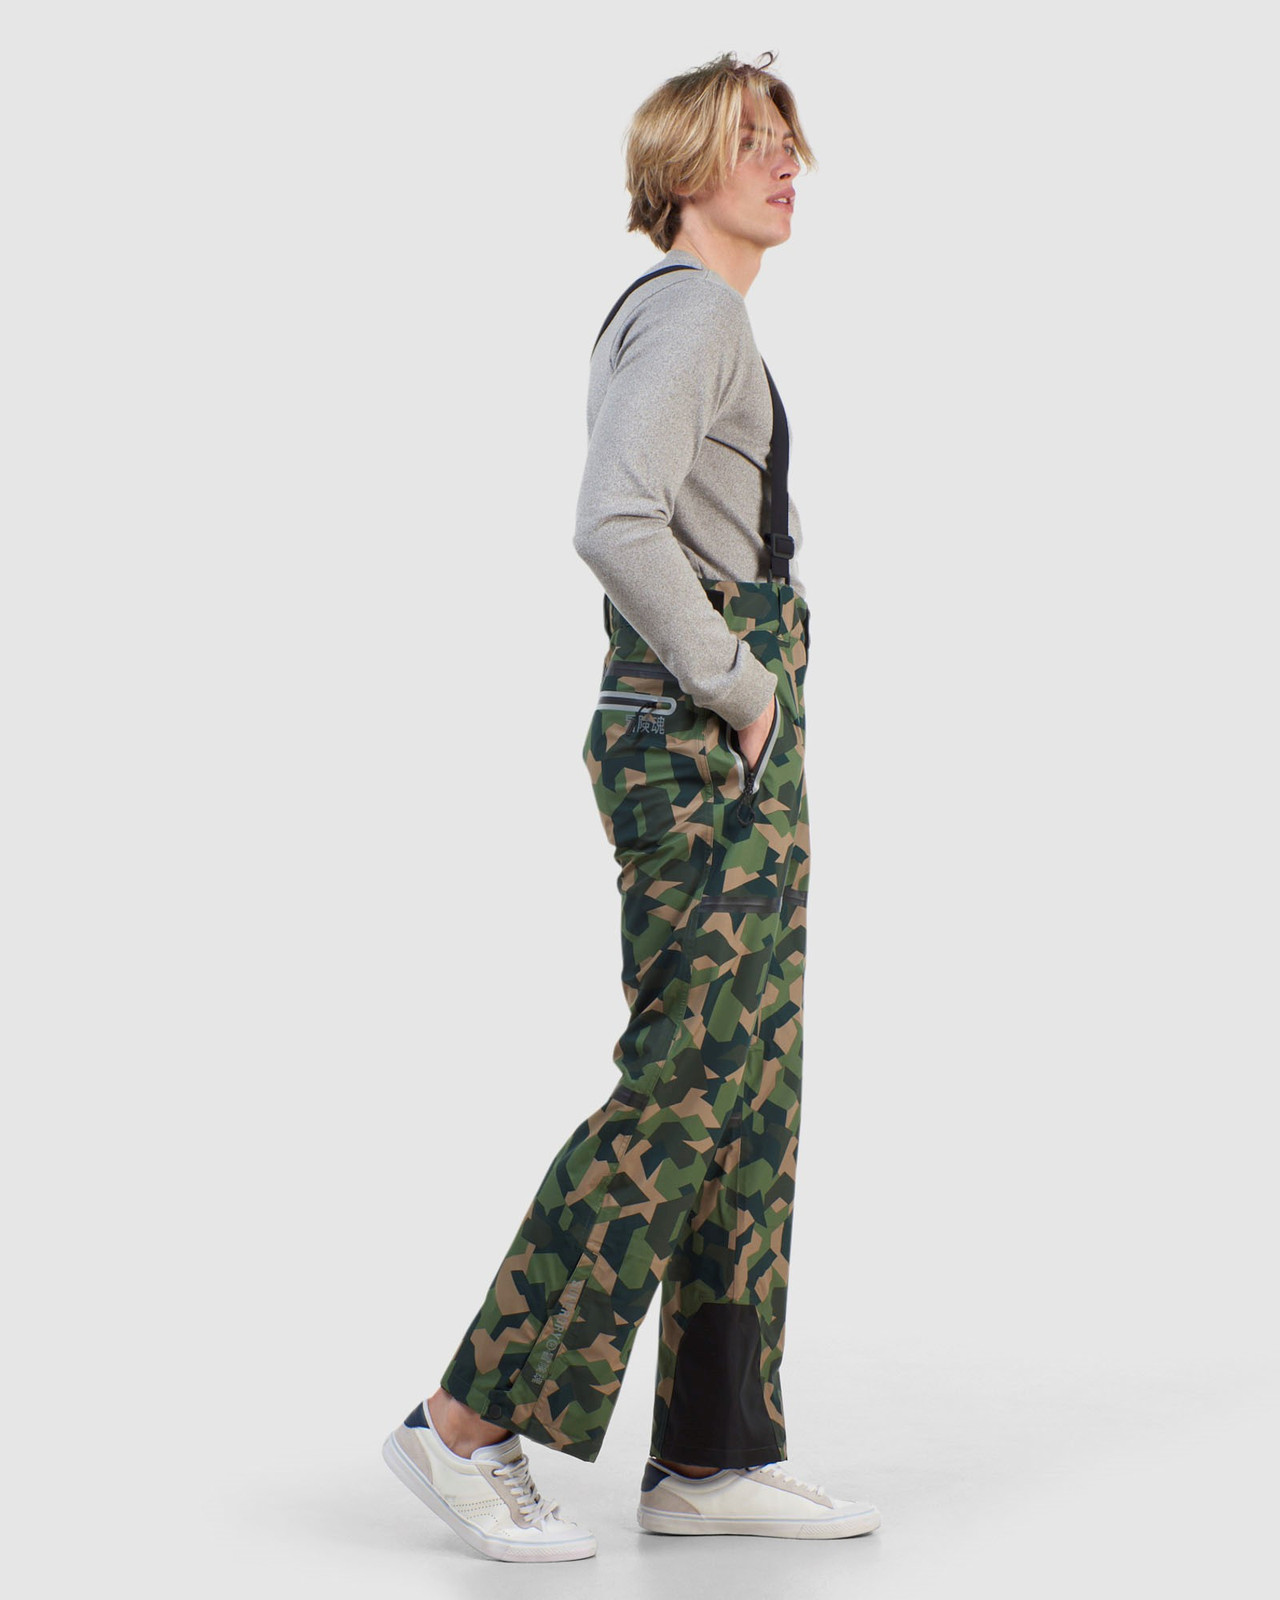 Superdry Mens EXPEDITION SHELL PANT Green Snow Pants 5